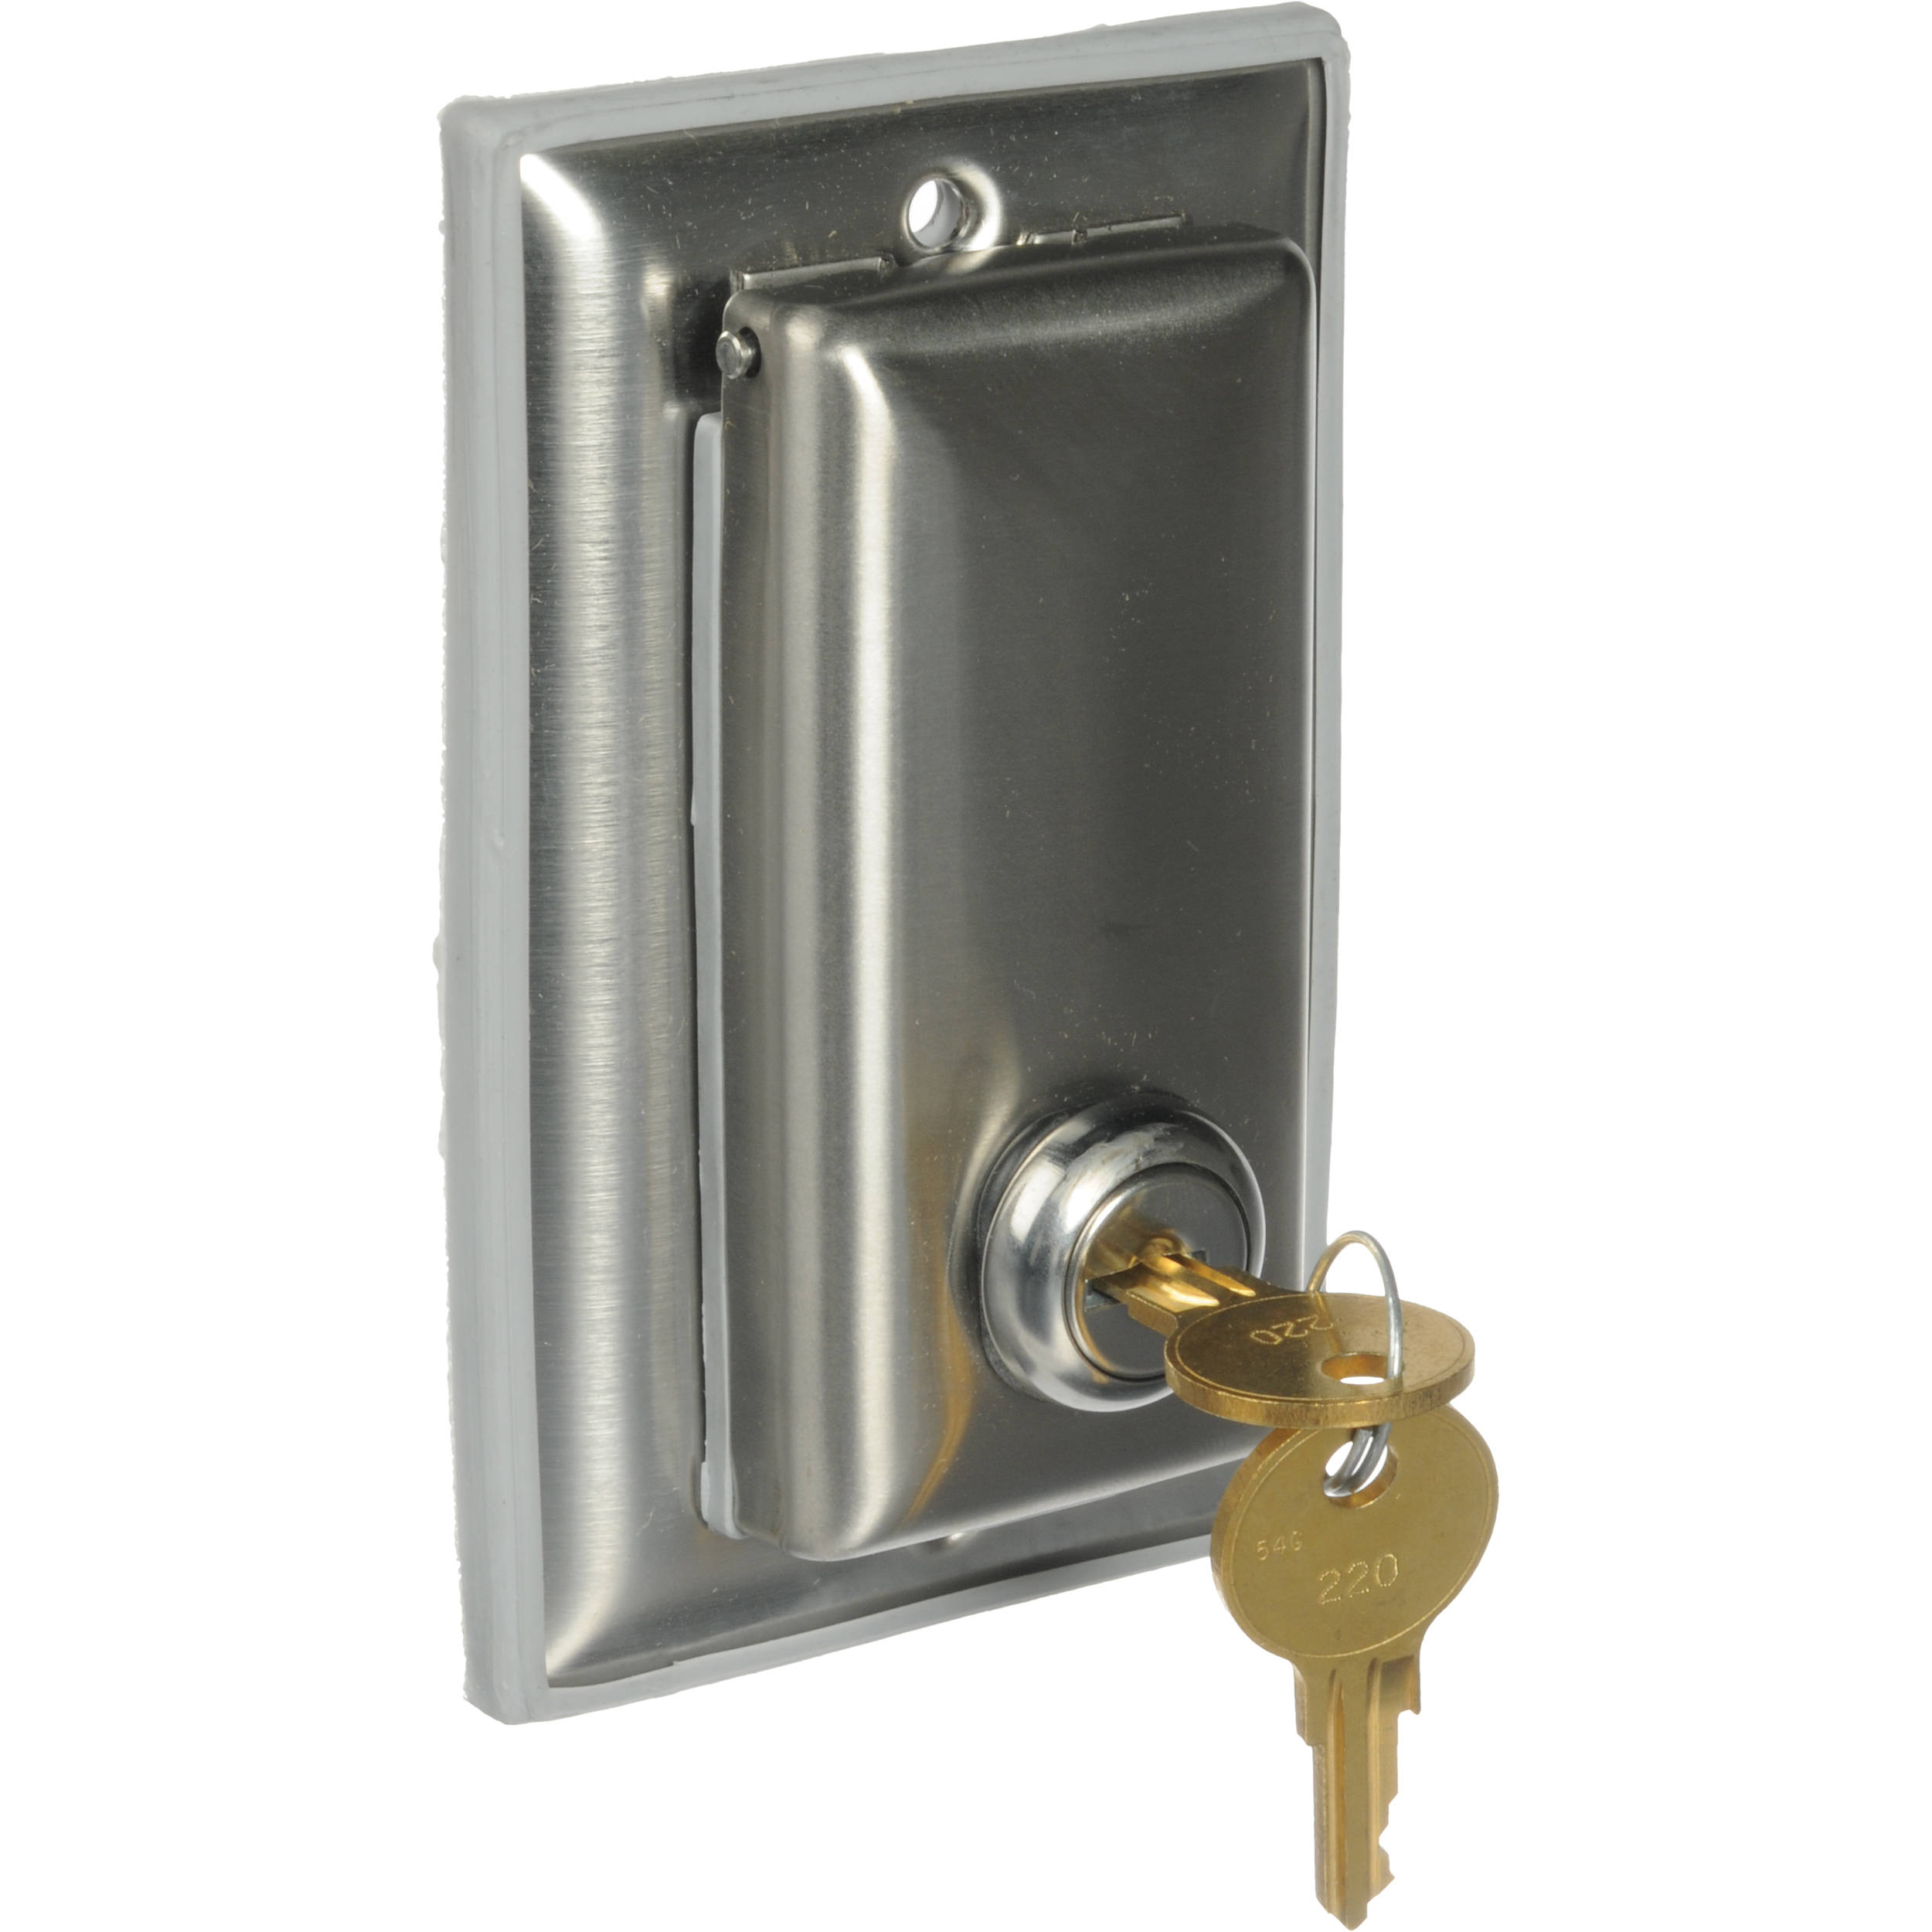 Da Lite Key Locking Coverplate For 115v Or Low Voltage